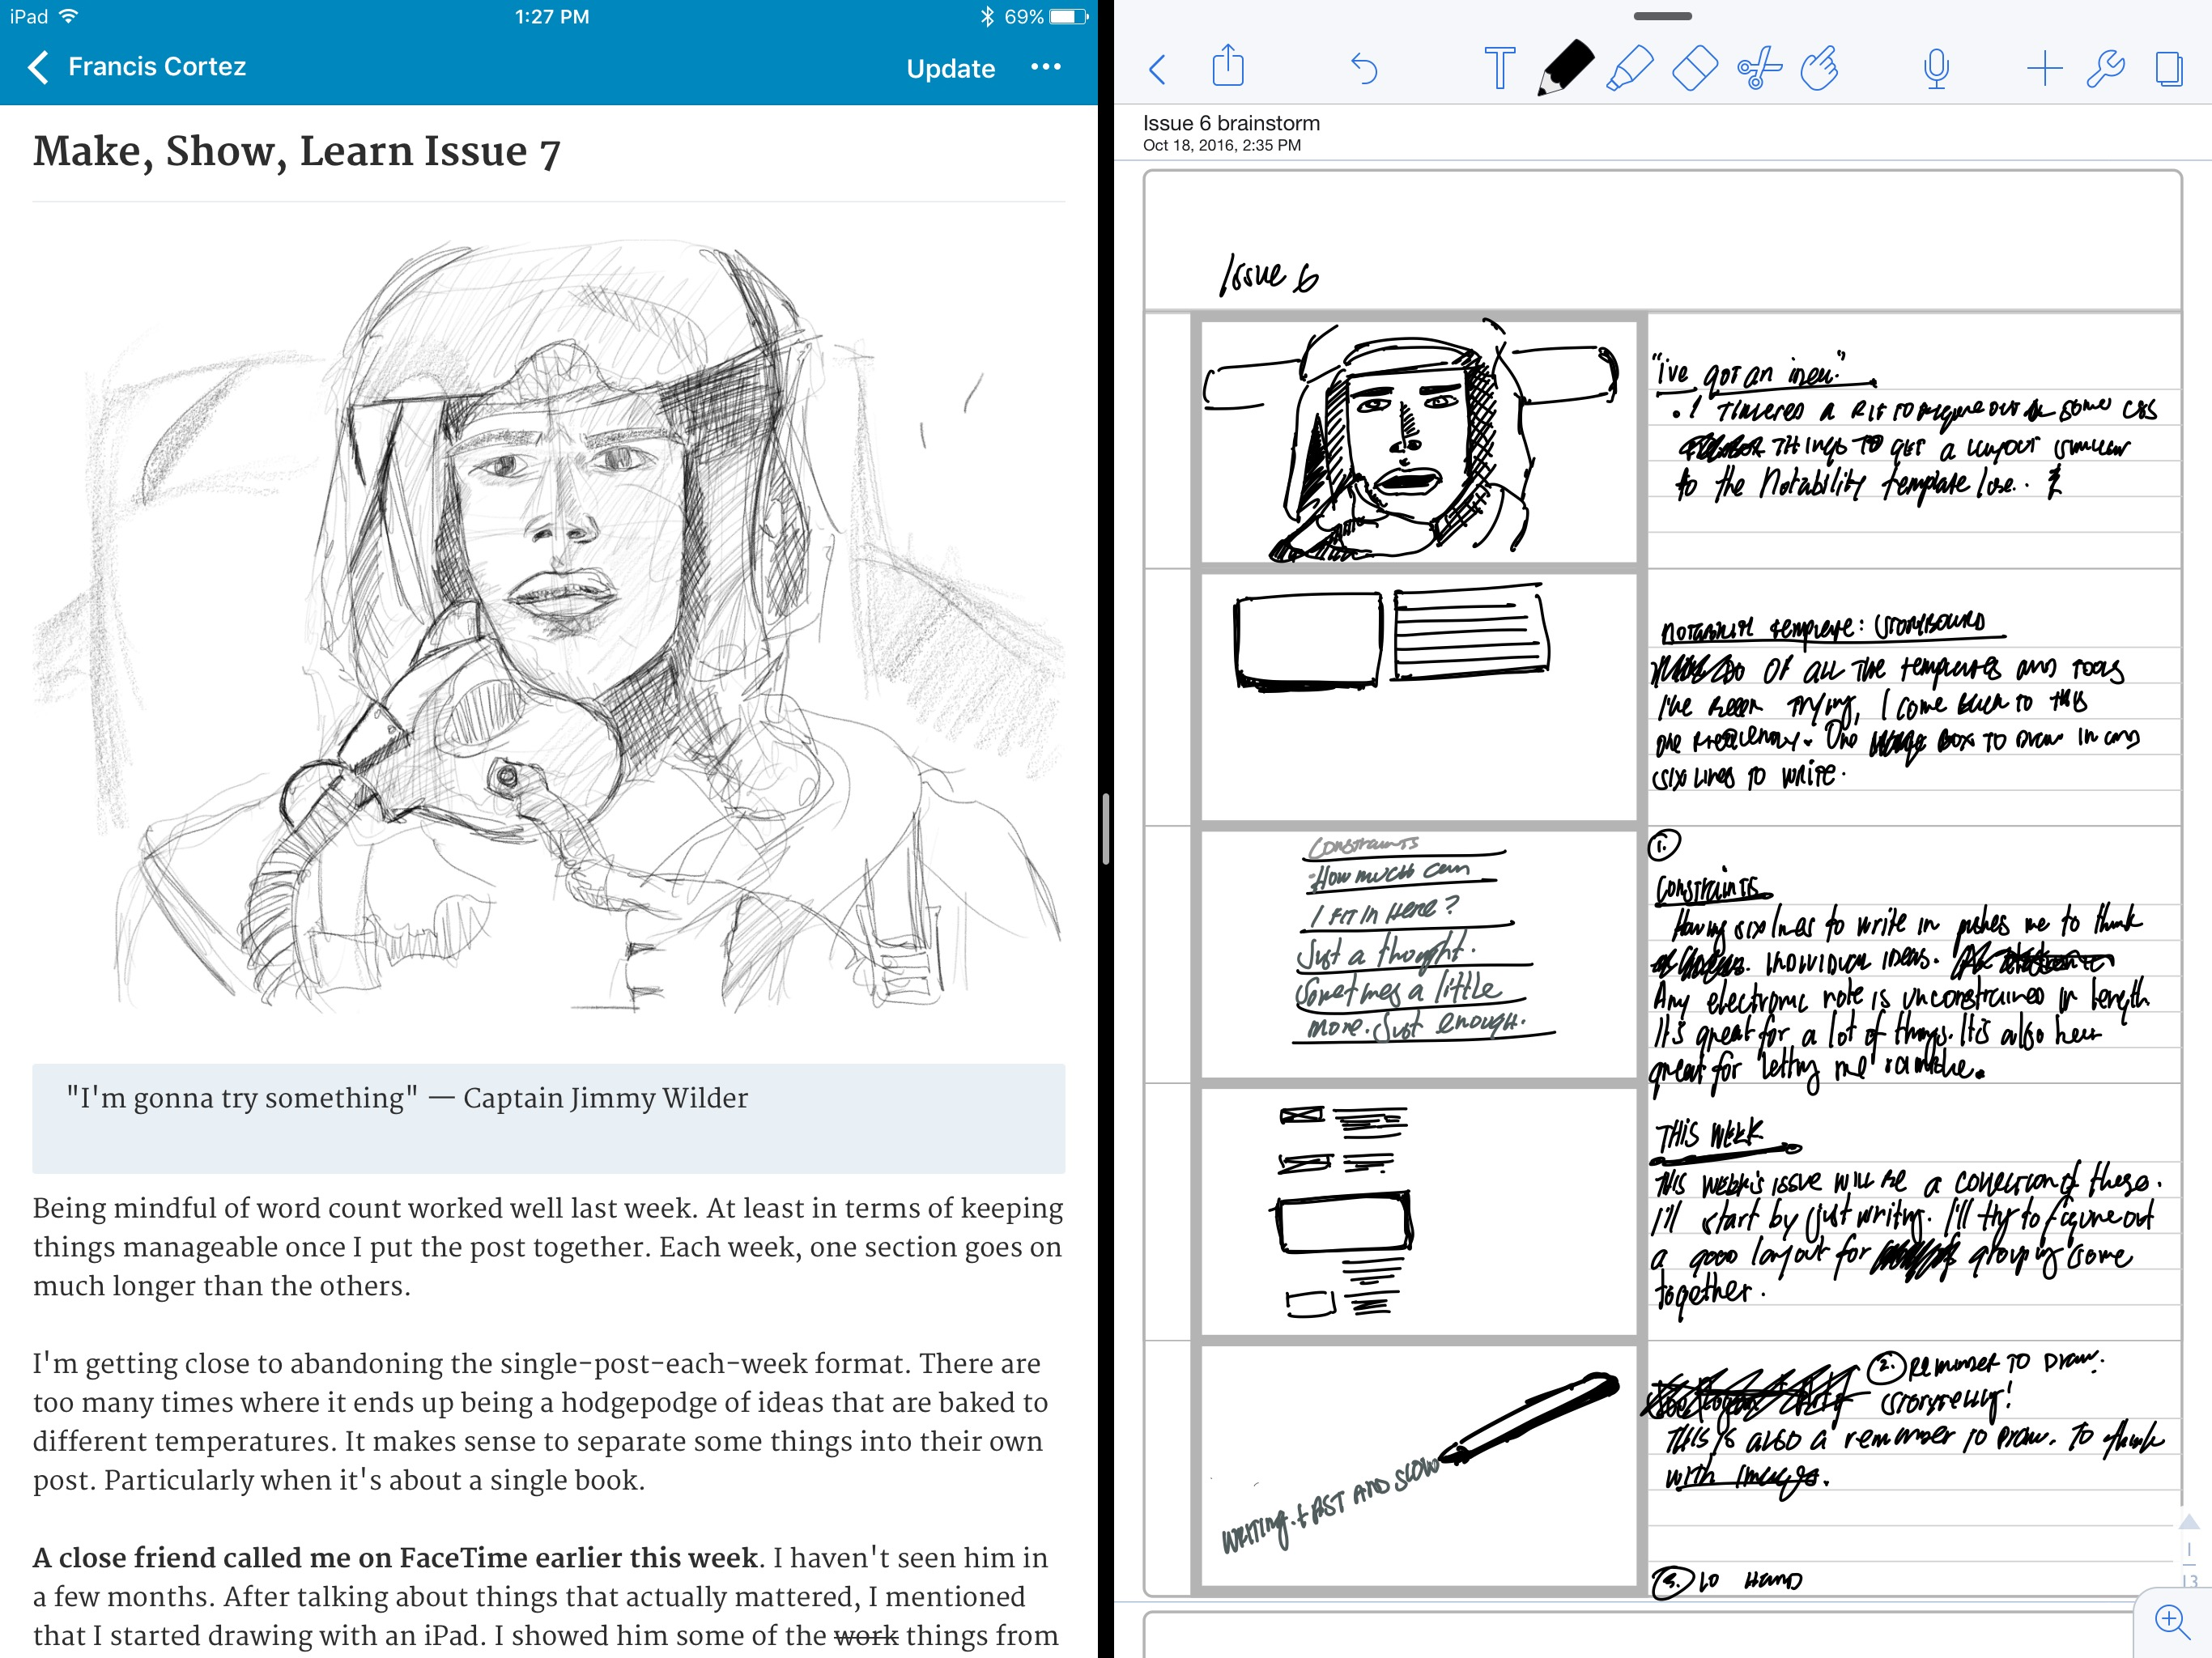 Coloring book for notability - I Ve Been Brainstorming In Notability It S One Of My Favorite Things To Do There S A Template I Ve Been Using That S A Vertical Storyboard